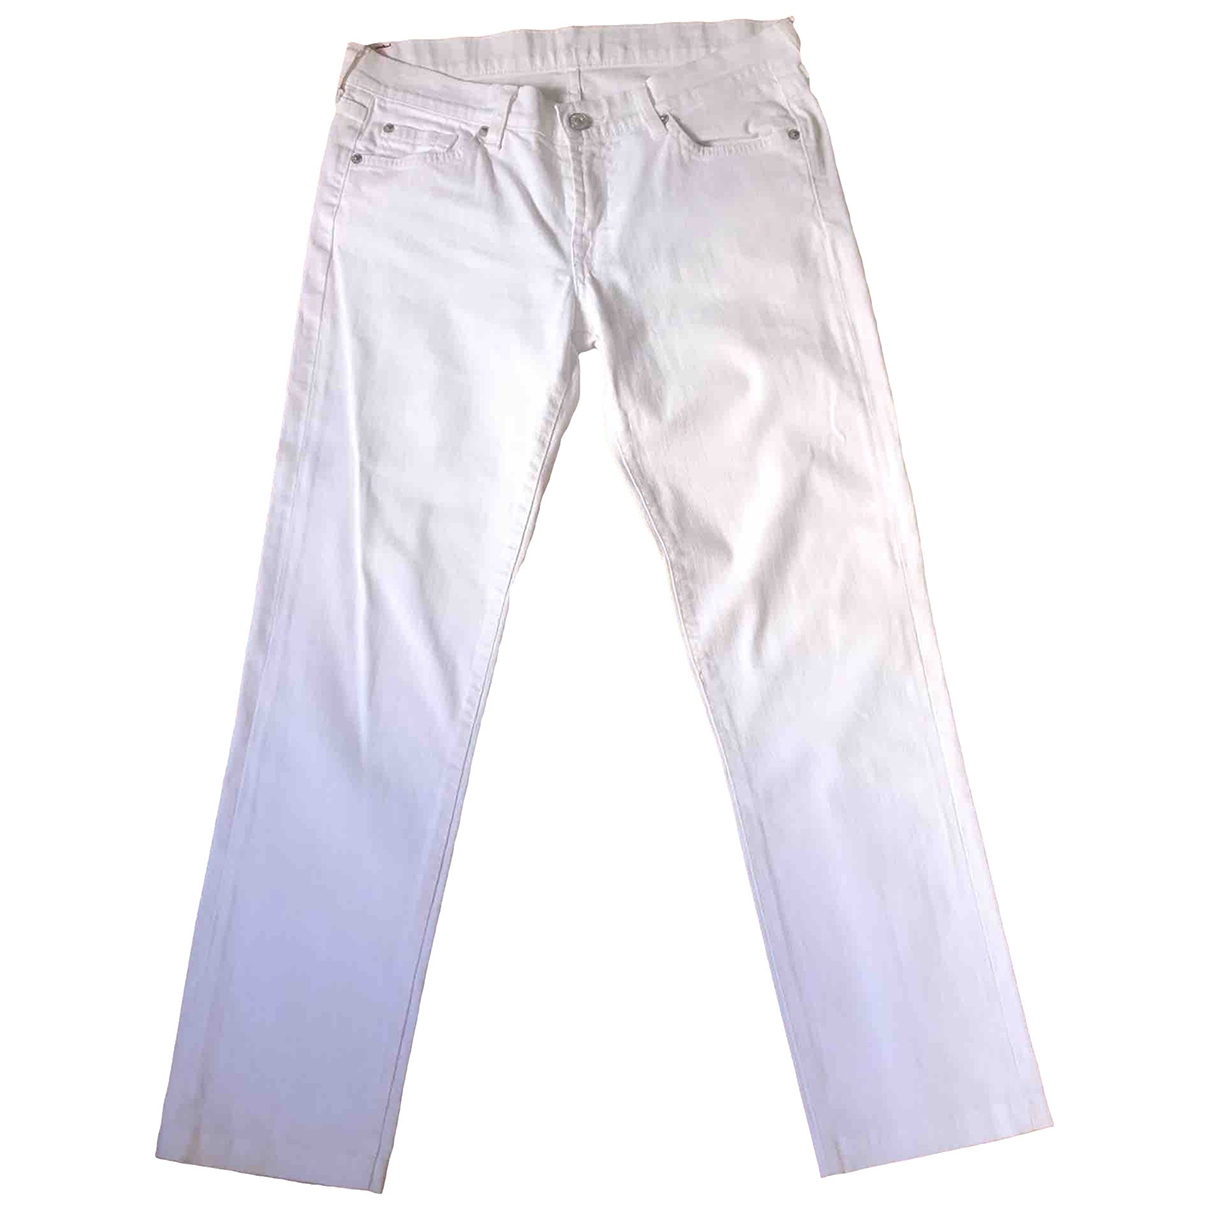 7 For All Mankind \N White Cotton - elasthane Jeans for Women 29 US